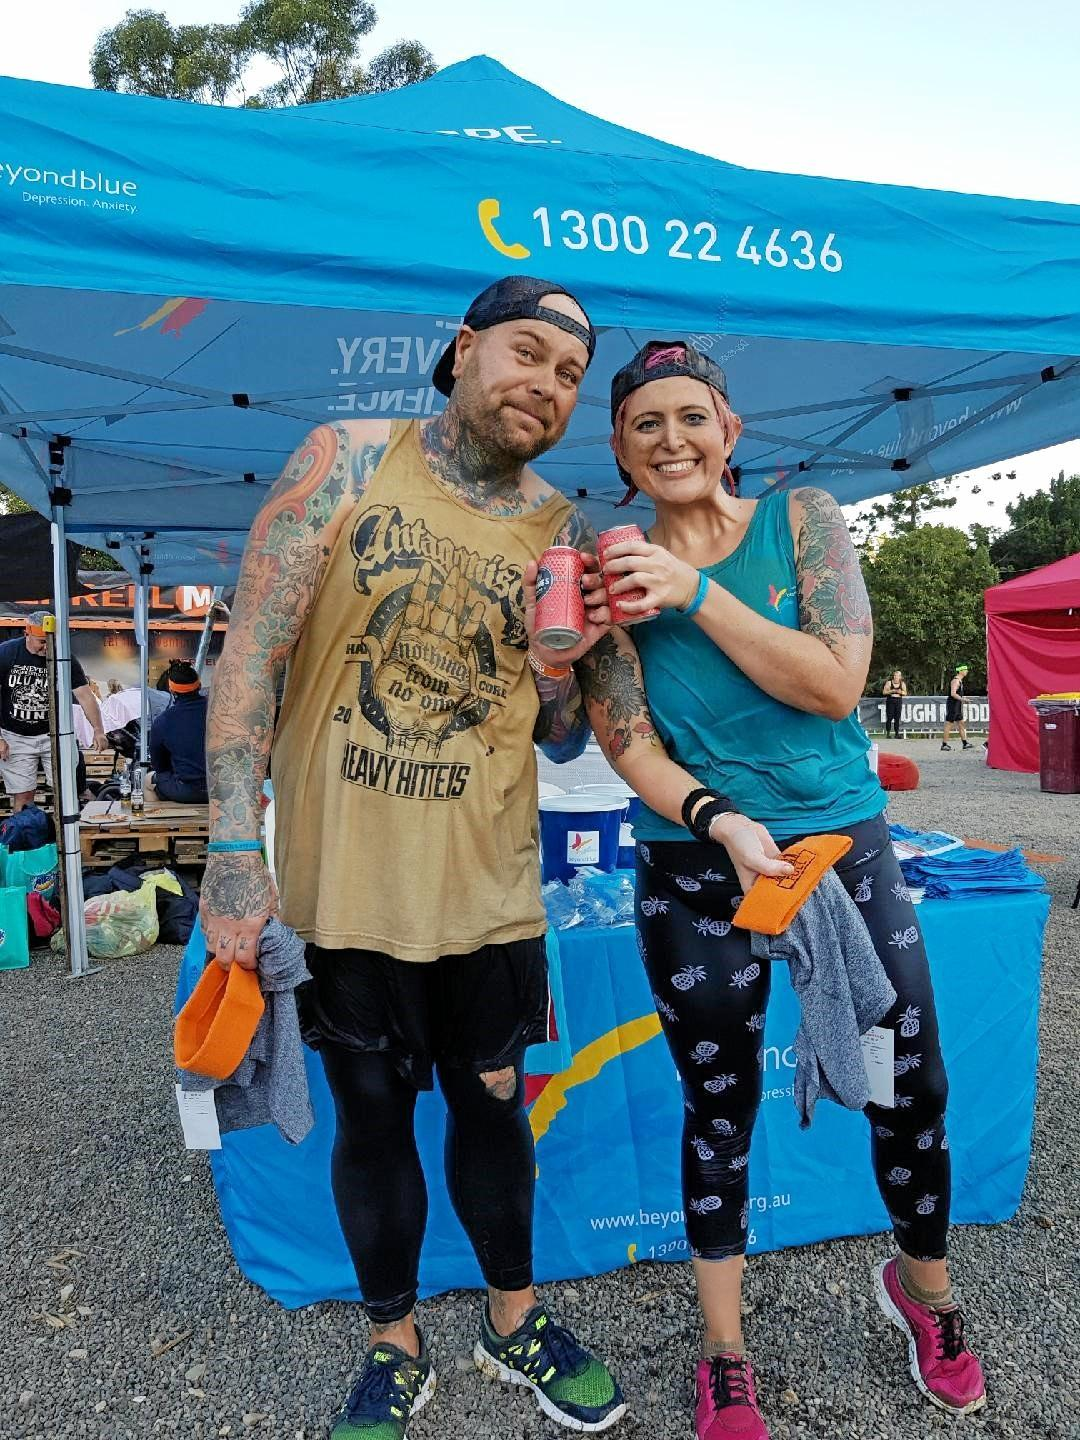 TOUGH NUTS: Amy Ratcliffe and Daniel Bennett competing at the 2018 Tough Mudder after raising $3,000 for Beyond Blue